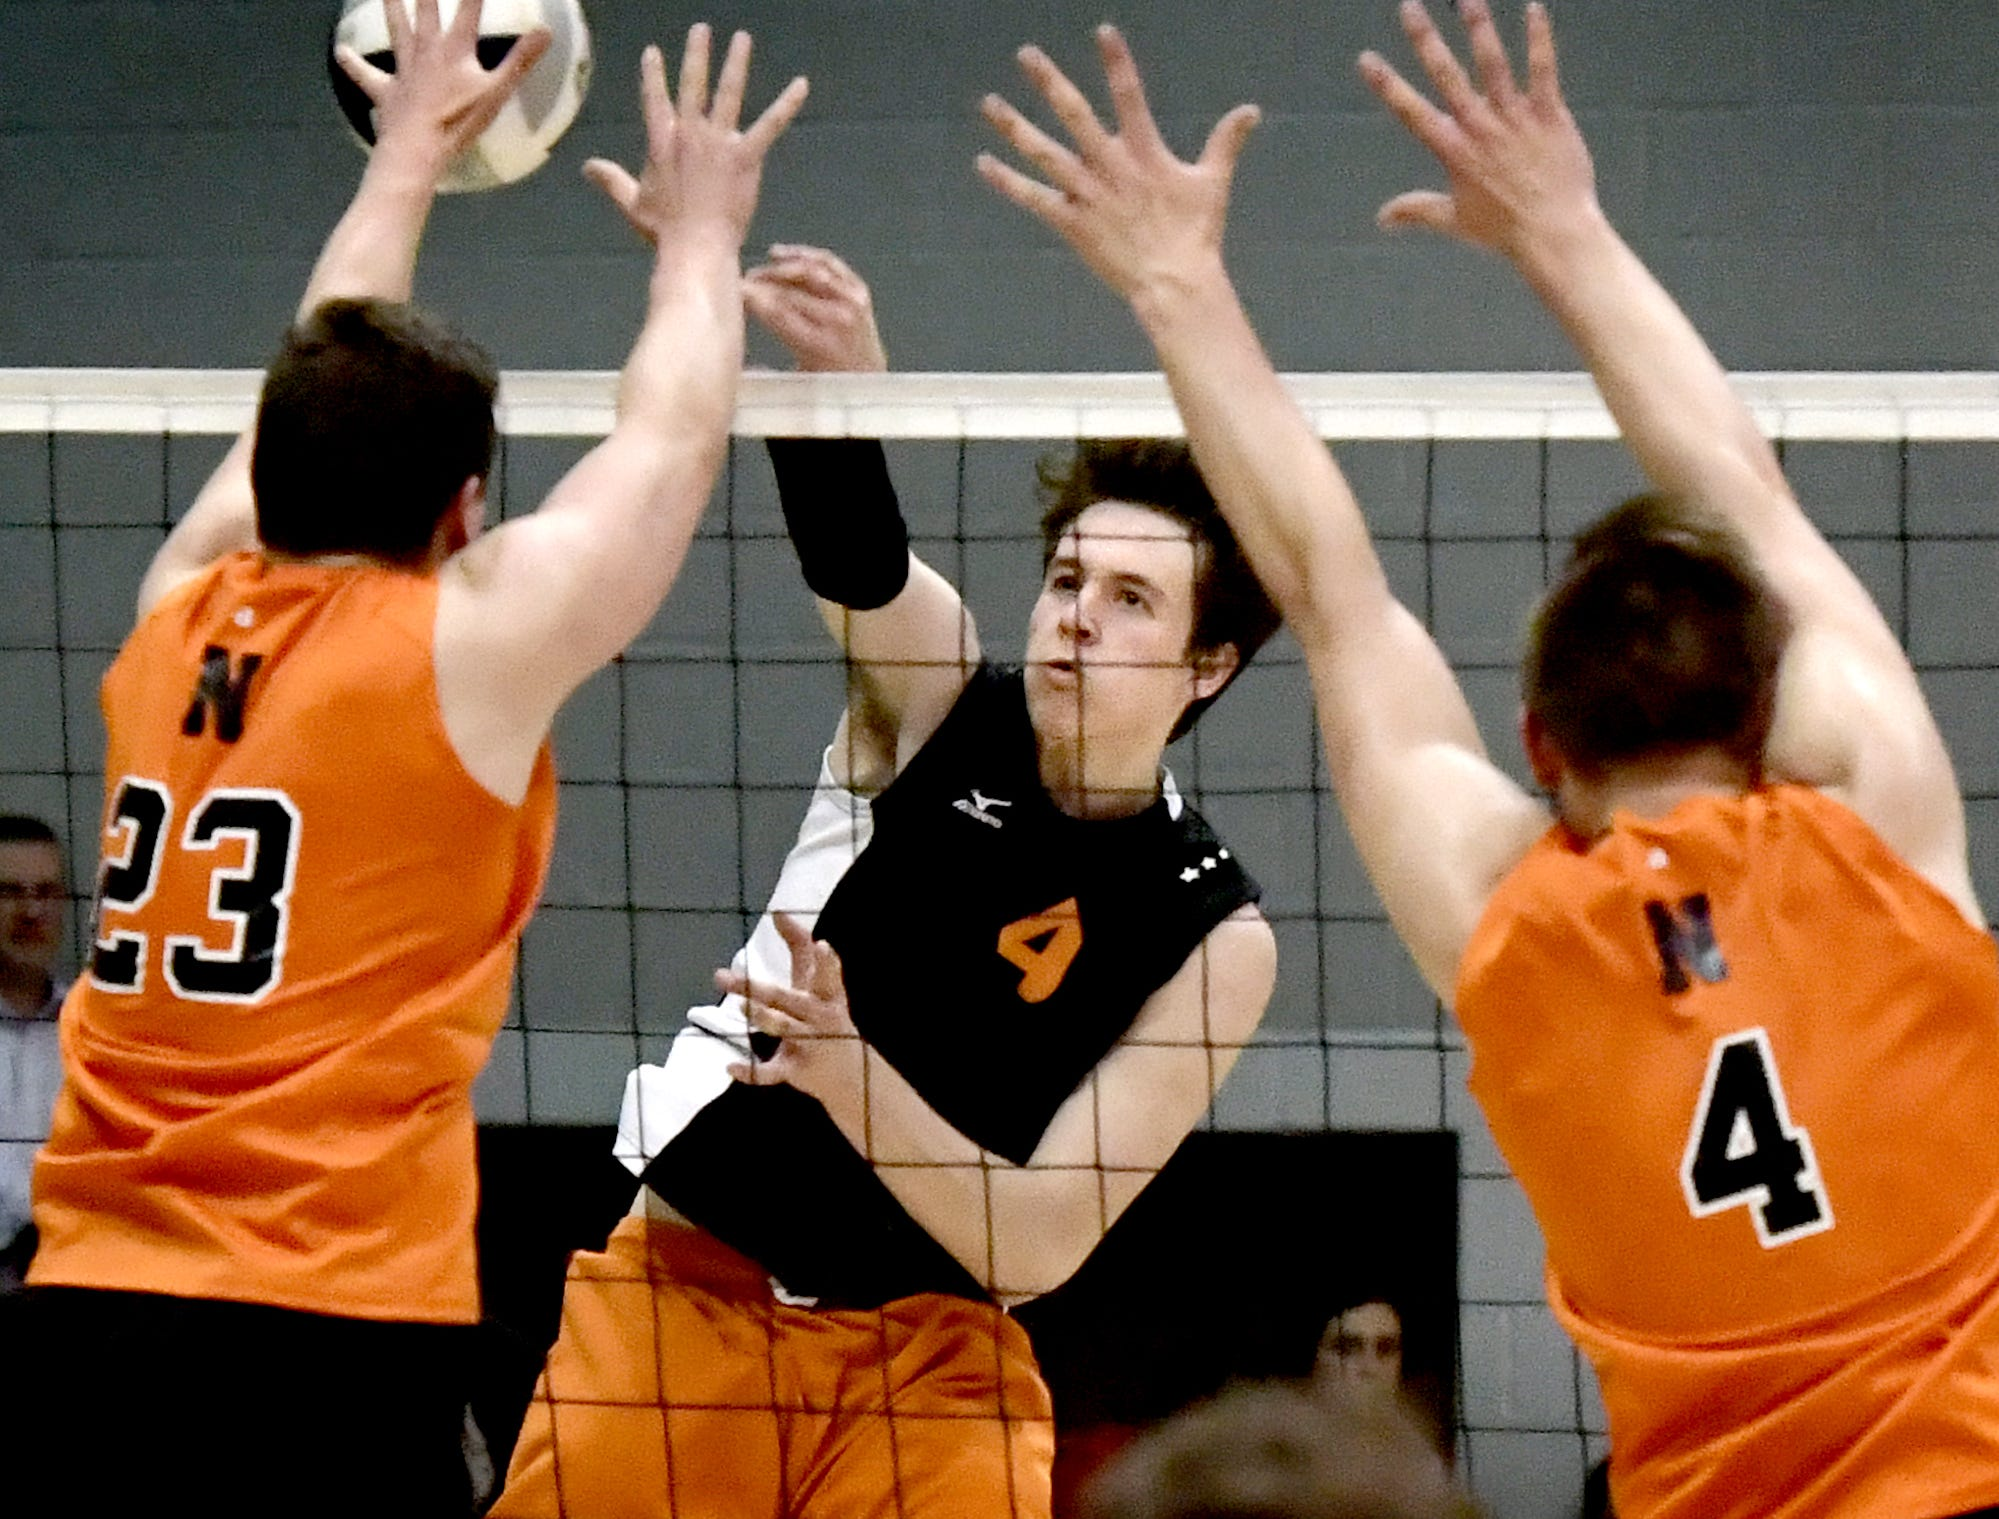 Central York's Matt Minkin fires a shot at Northeastern's Kyle Williams, left, and Zech Sanderson in the York-Adams boys' volleyball championship match at Dallastown Tuesday, May 14, 2019. Bill Kalina photo